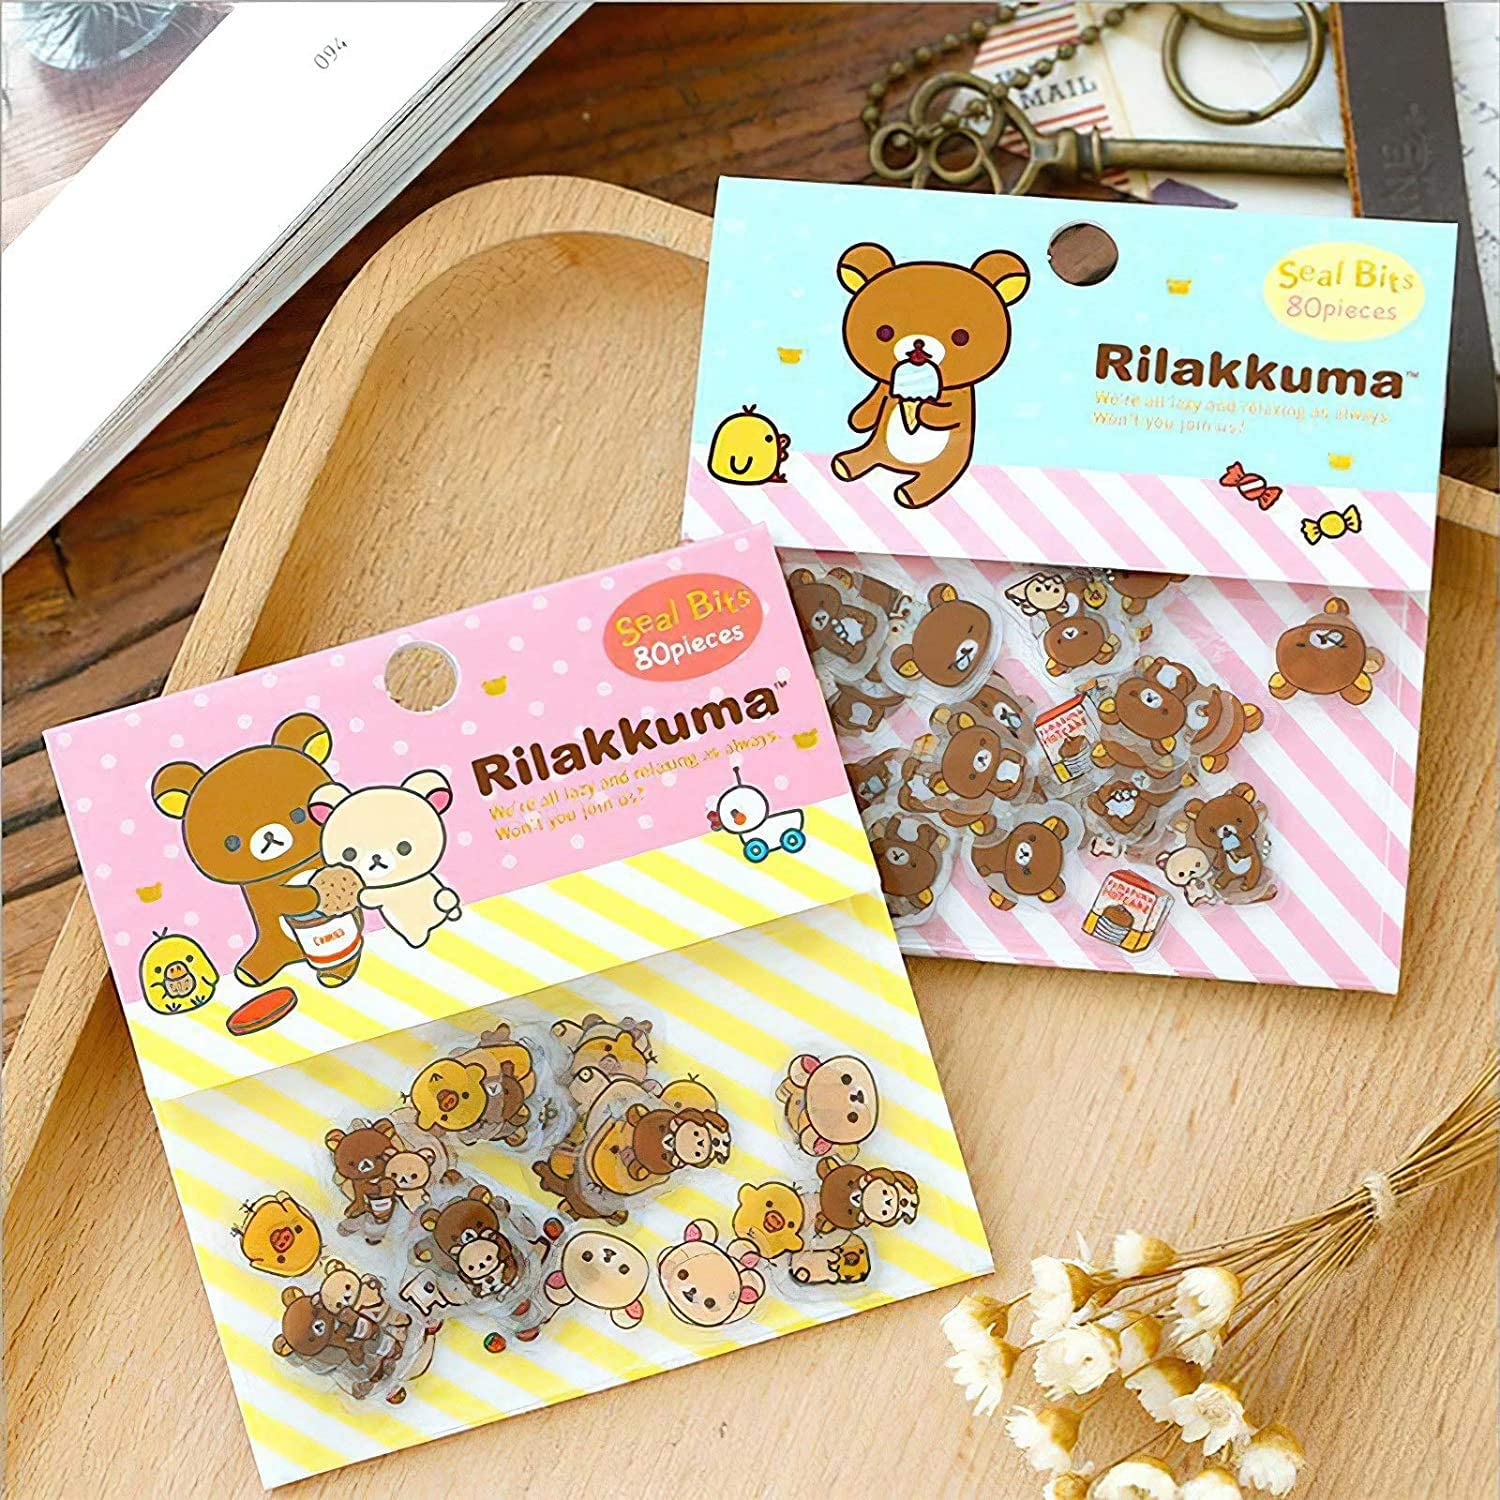 80 Pcs/lot Cute Rilakkuma Mini Paper Sticker Bag DIY Diary Planner Decoration Sticker Album Scrapbooking Kawaii Stationery